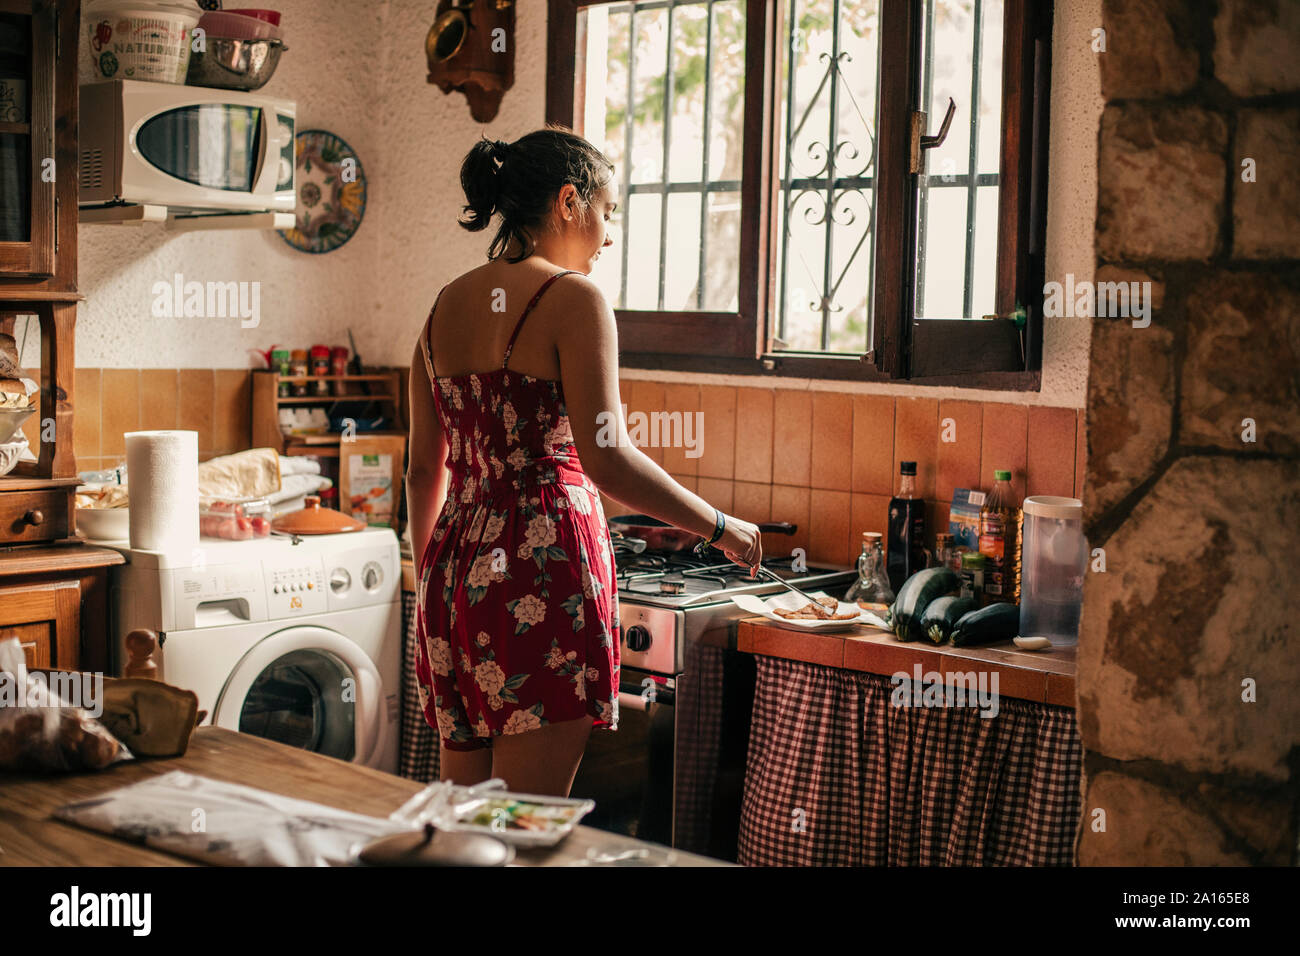 Rear view of woman cooking in kitchen Stock Photo